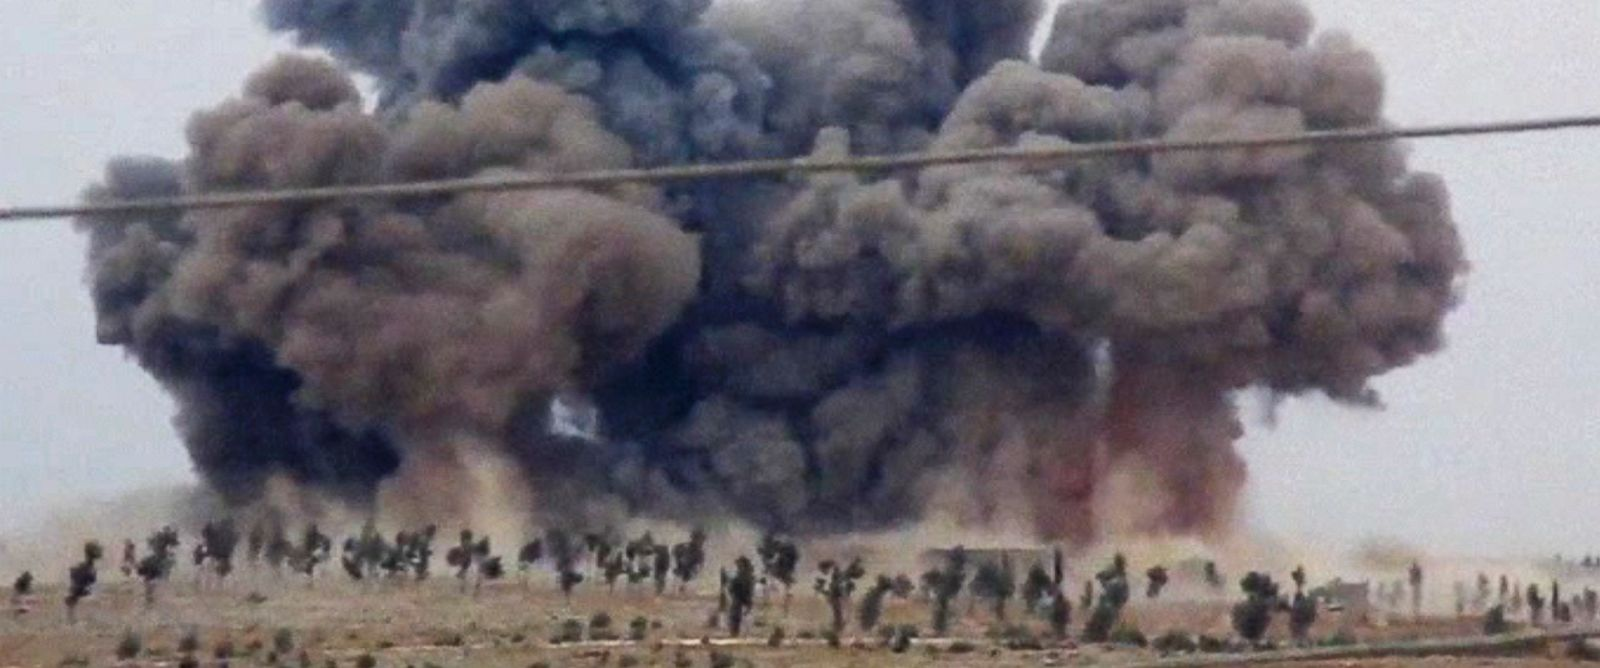 PHOTO: In this image made from video provided by Hadi Al-Abdallah, which has been verified and is consistent with other AP reporting, smoke rises after airstrikes in Kafr Nabel of the Idlib province, western Syria, Oct. 1, 2015.